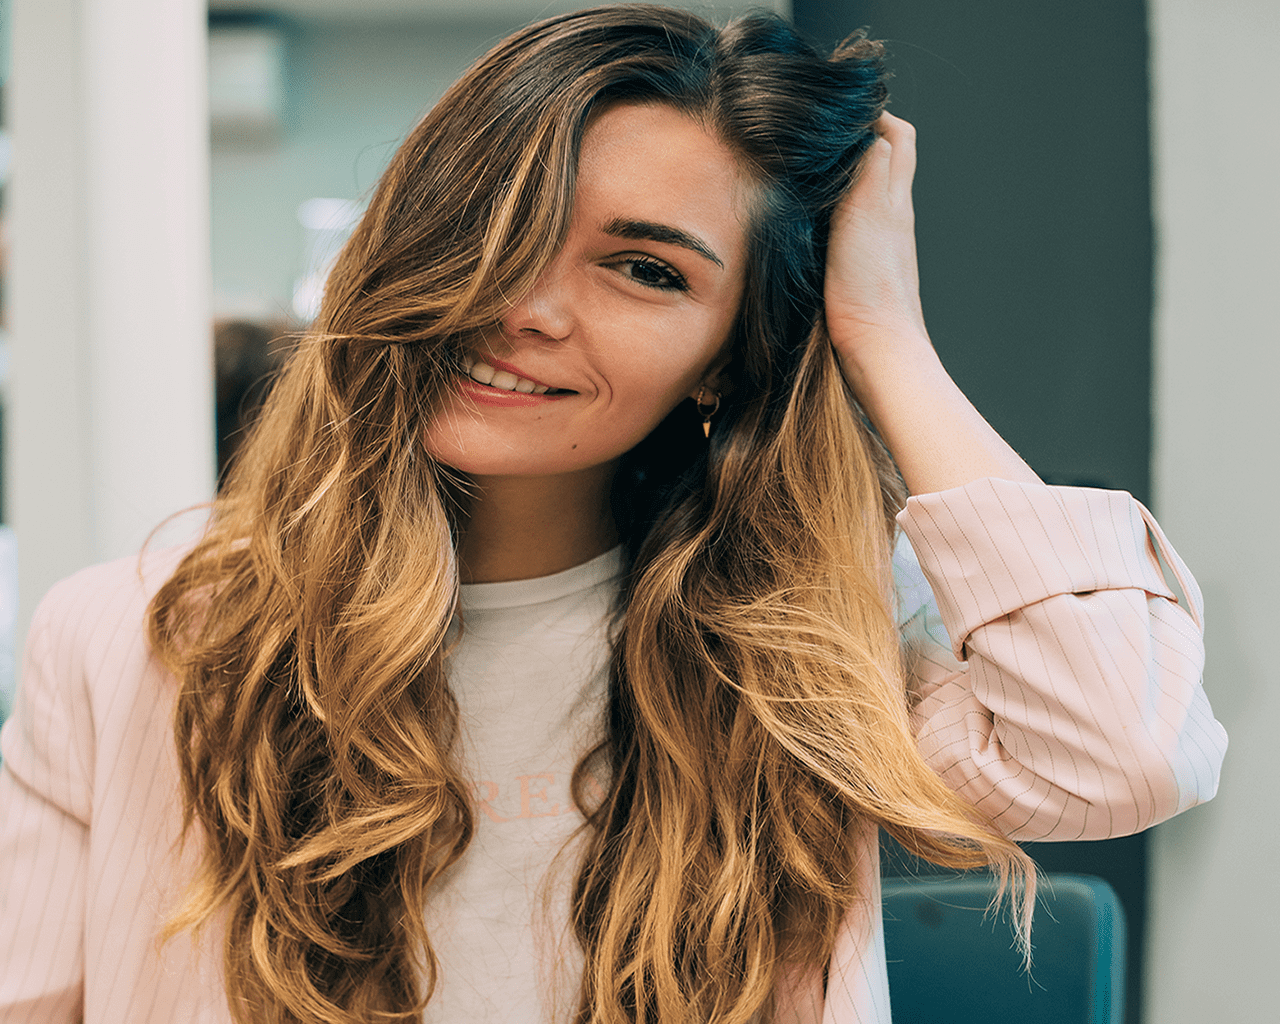 Gallery: Image of a woman with long wavy ombre hair.